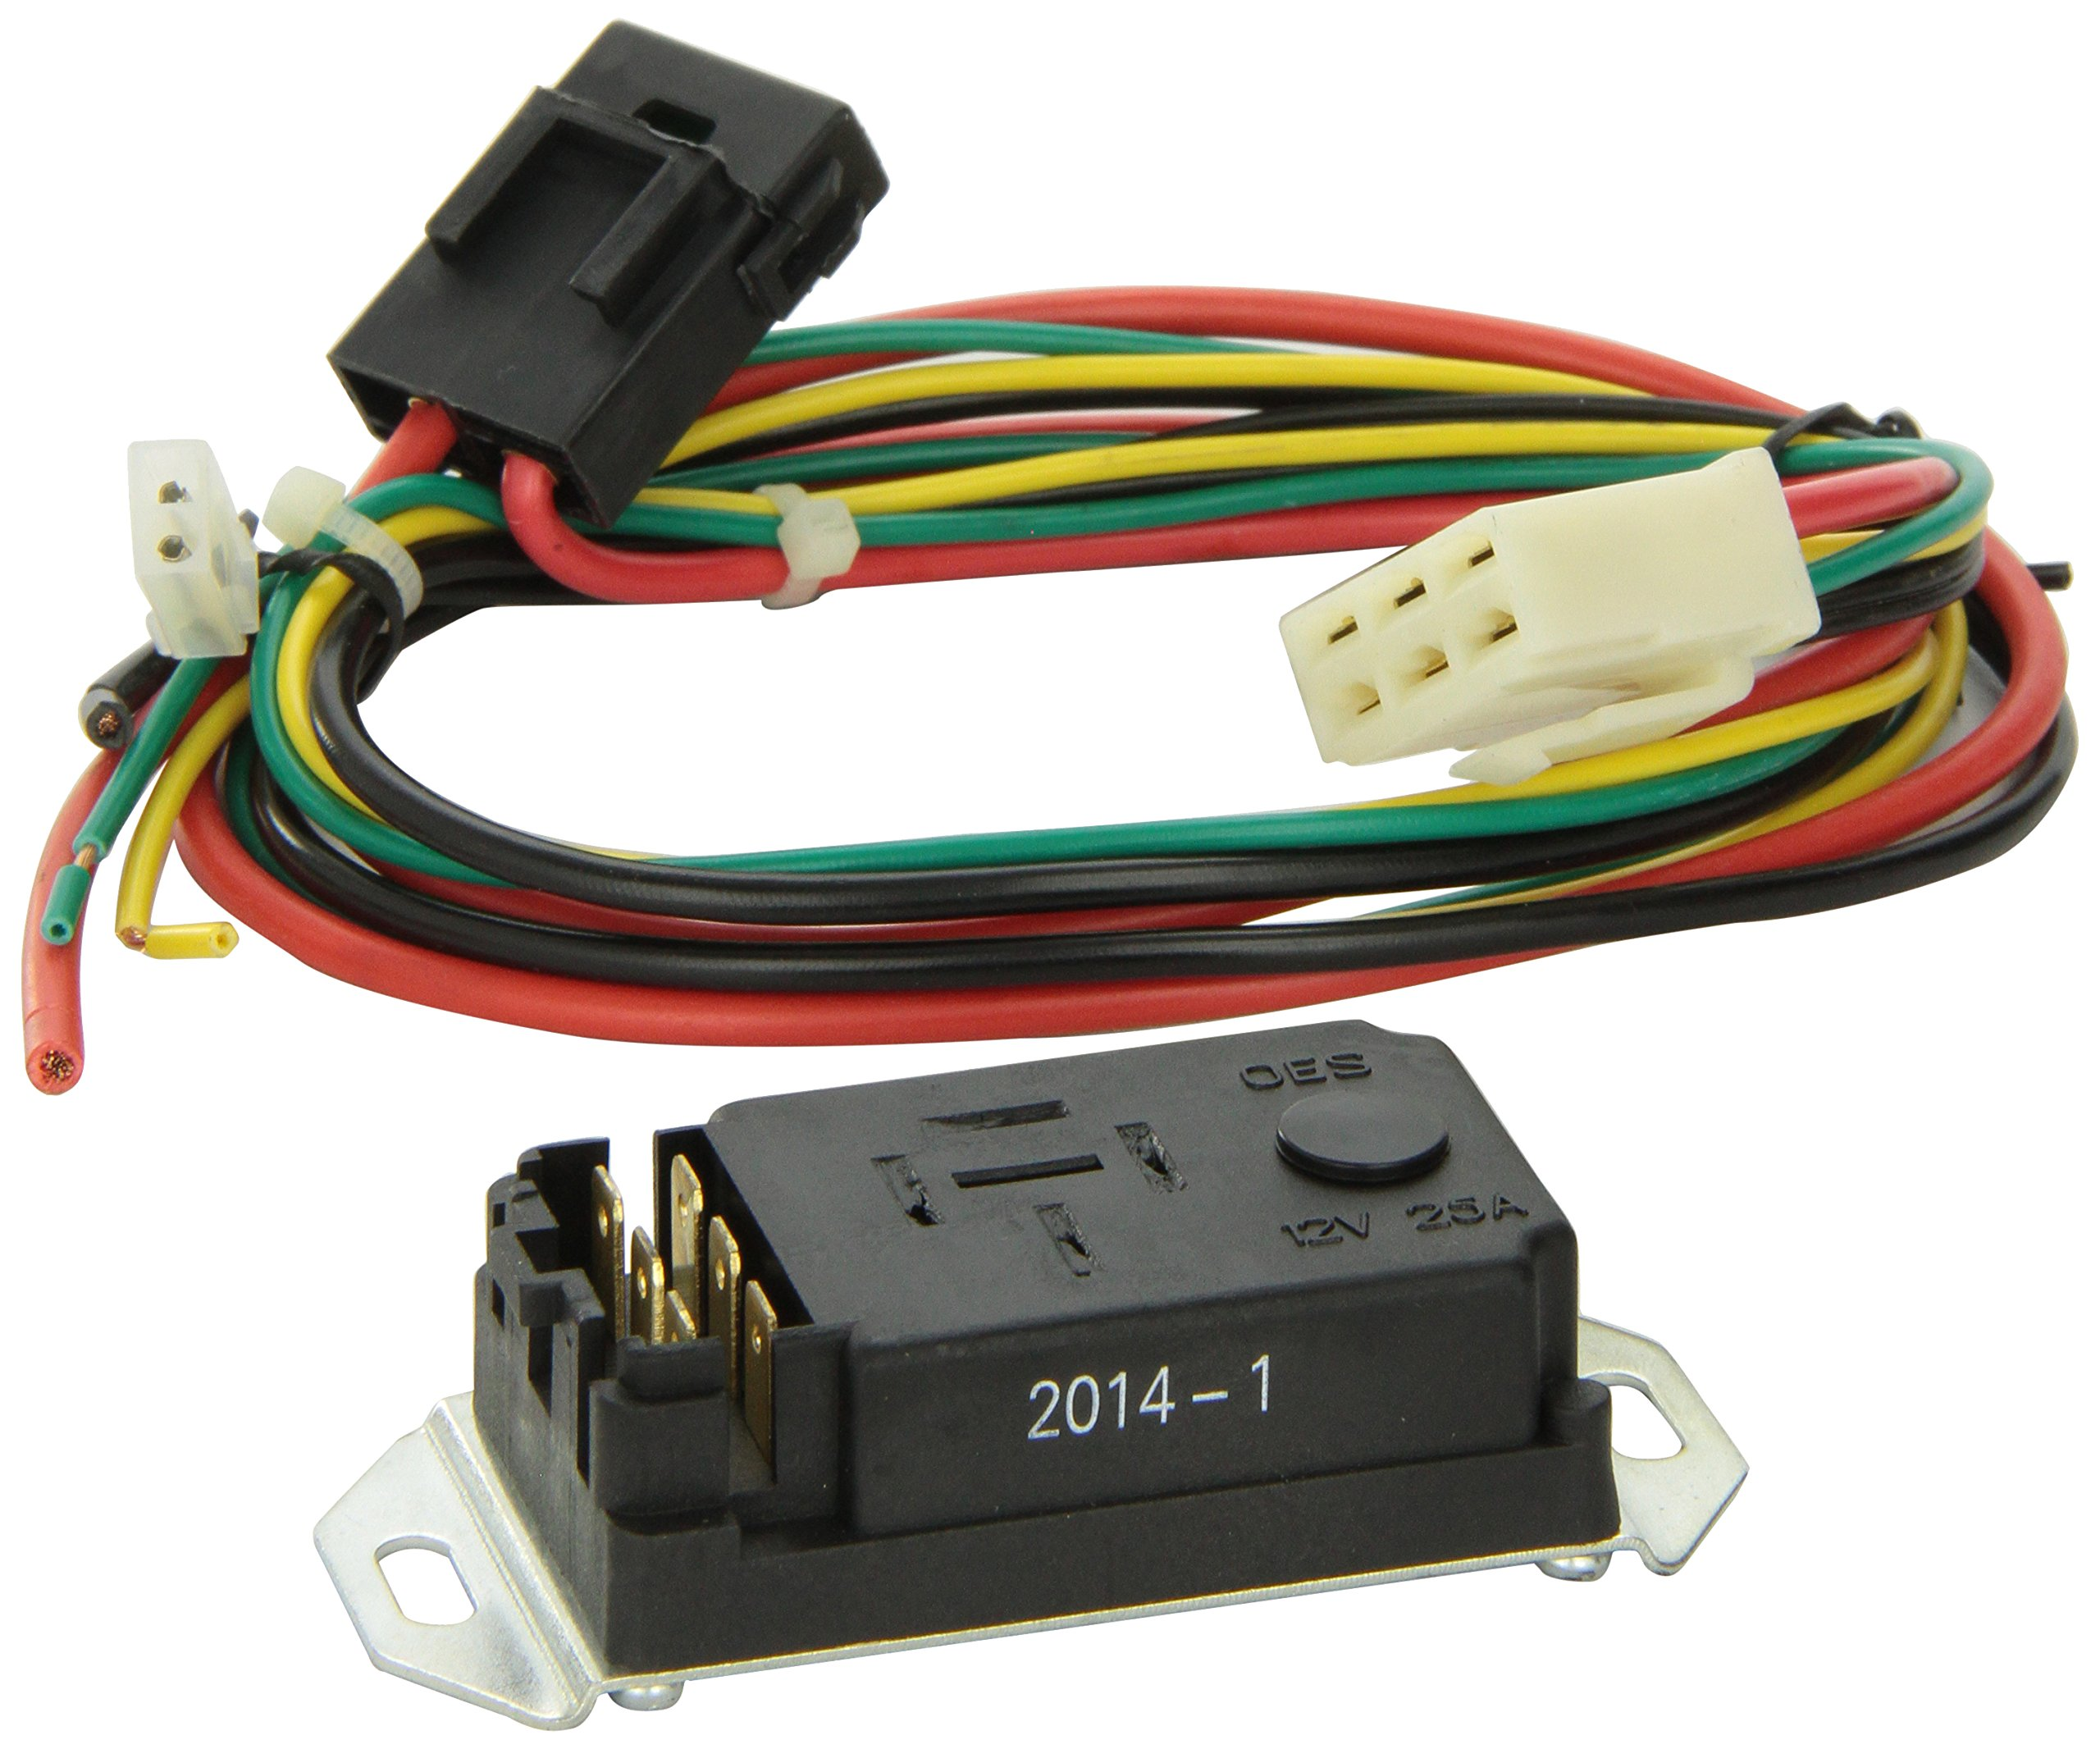 Computer Dual Fan Relay Wiring Diagram | Wiring Liry on thermostat wiring diagram, hot rod wiring diagram, derale oil cooler wiring diagram, fan wiring diagram, electric fuel pump wiring diagram,